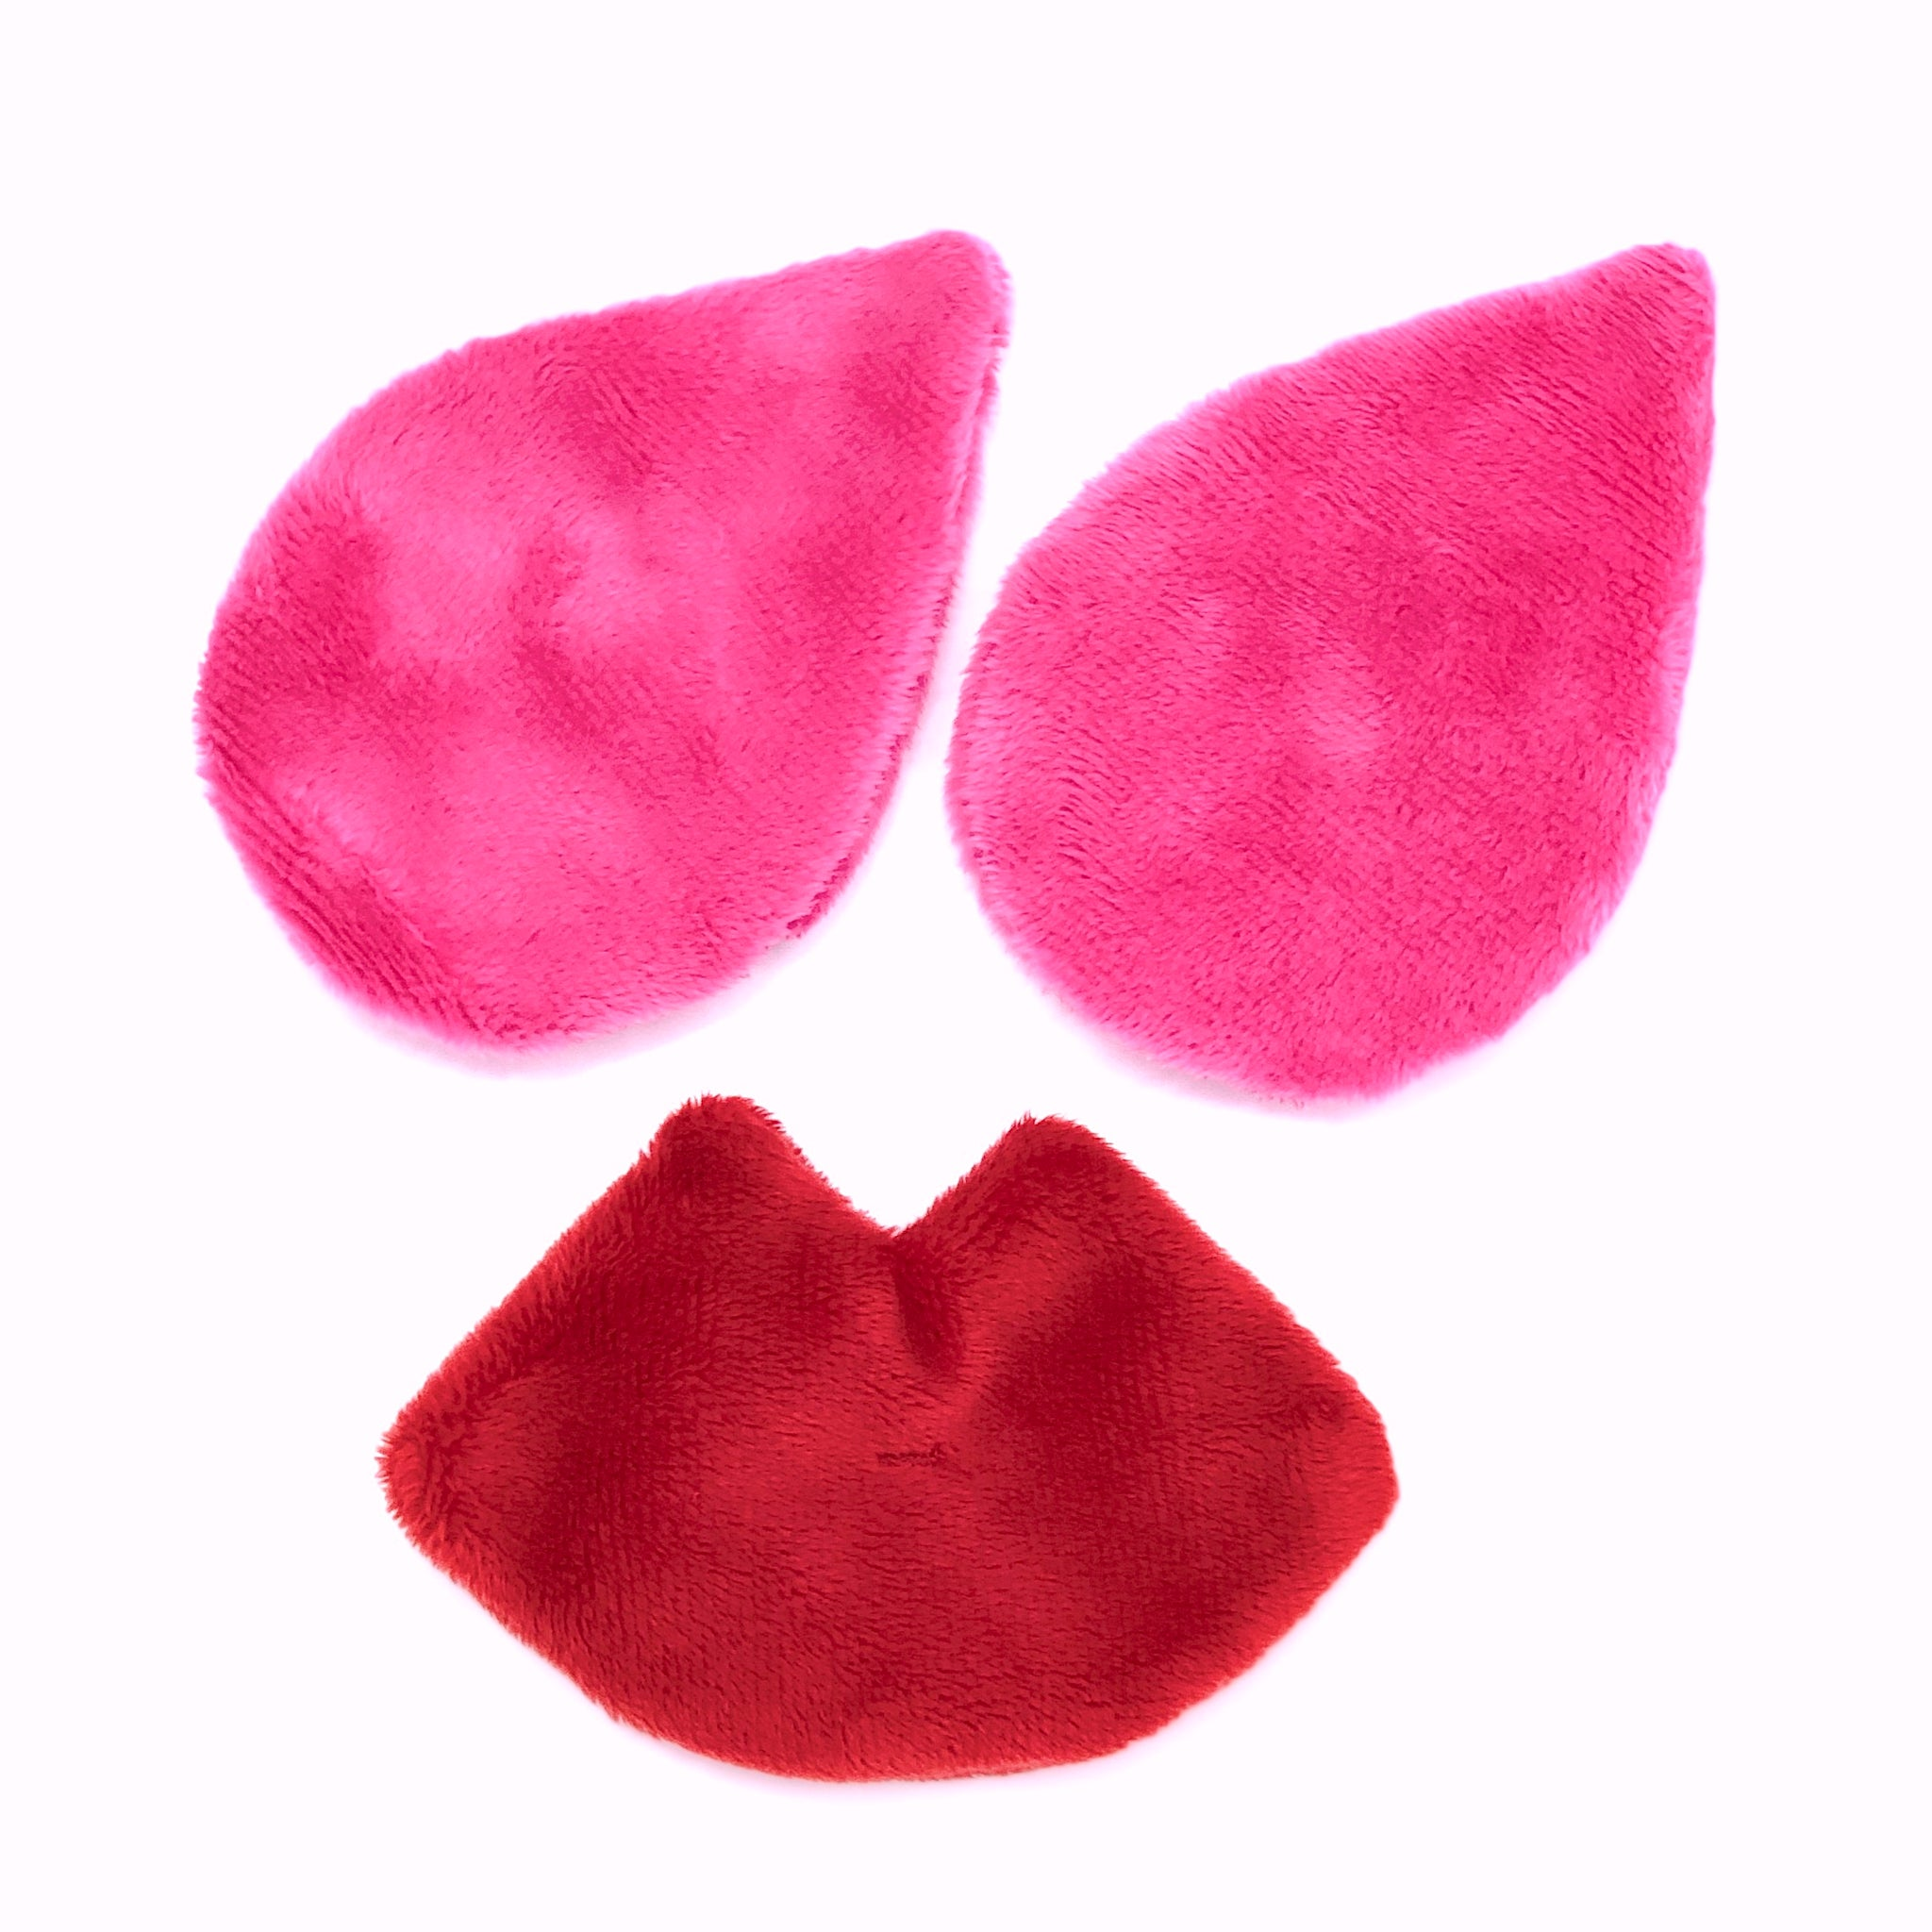 The Mitty Mini/Vlada's Mitty Pout 3-Piece Set of Ultra-Gentle, Reusable Makeup Removers